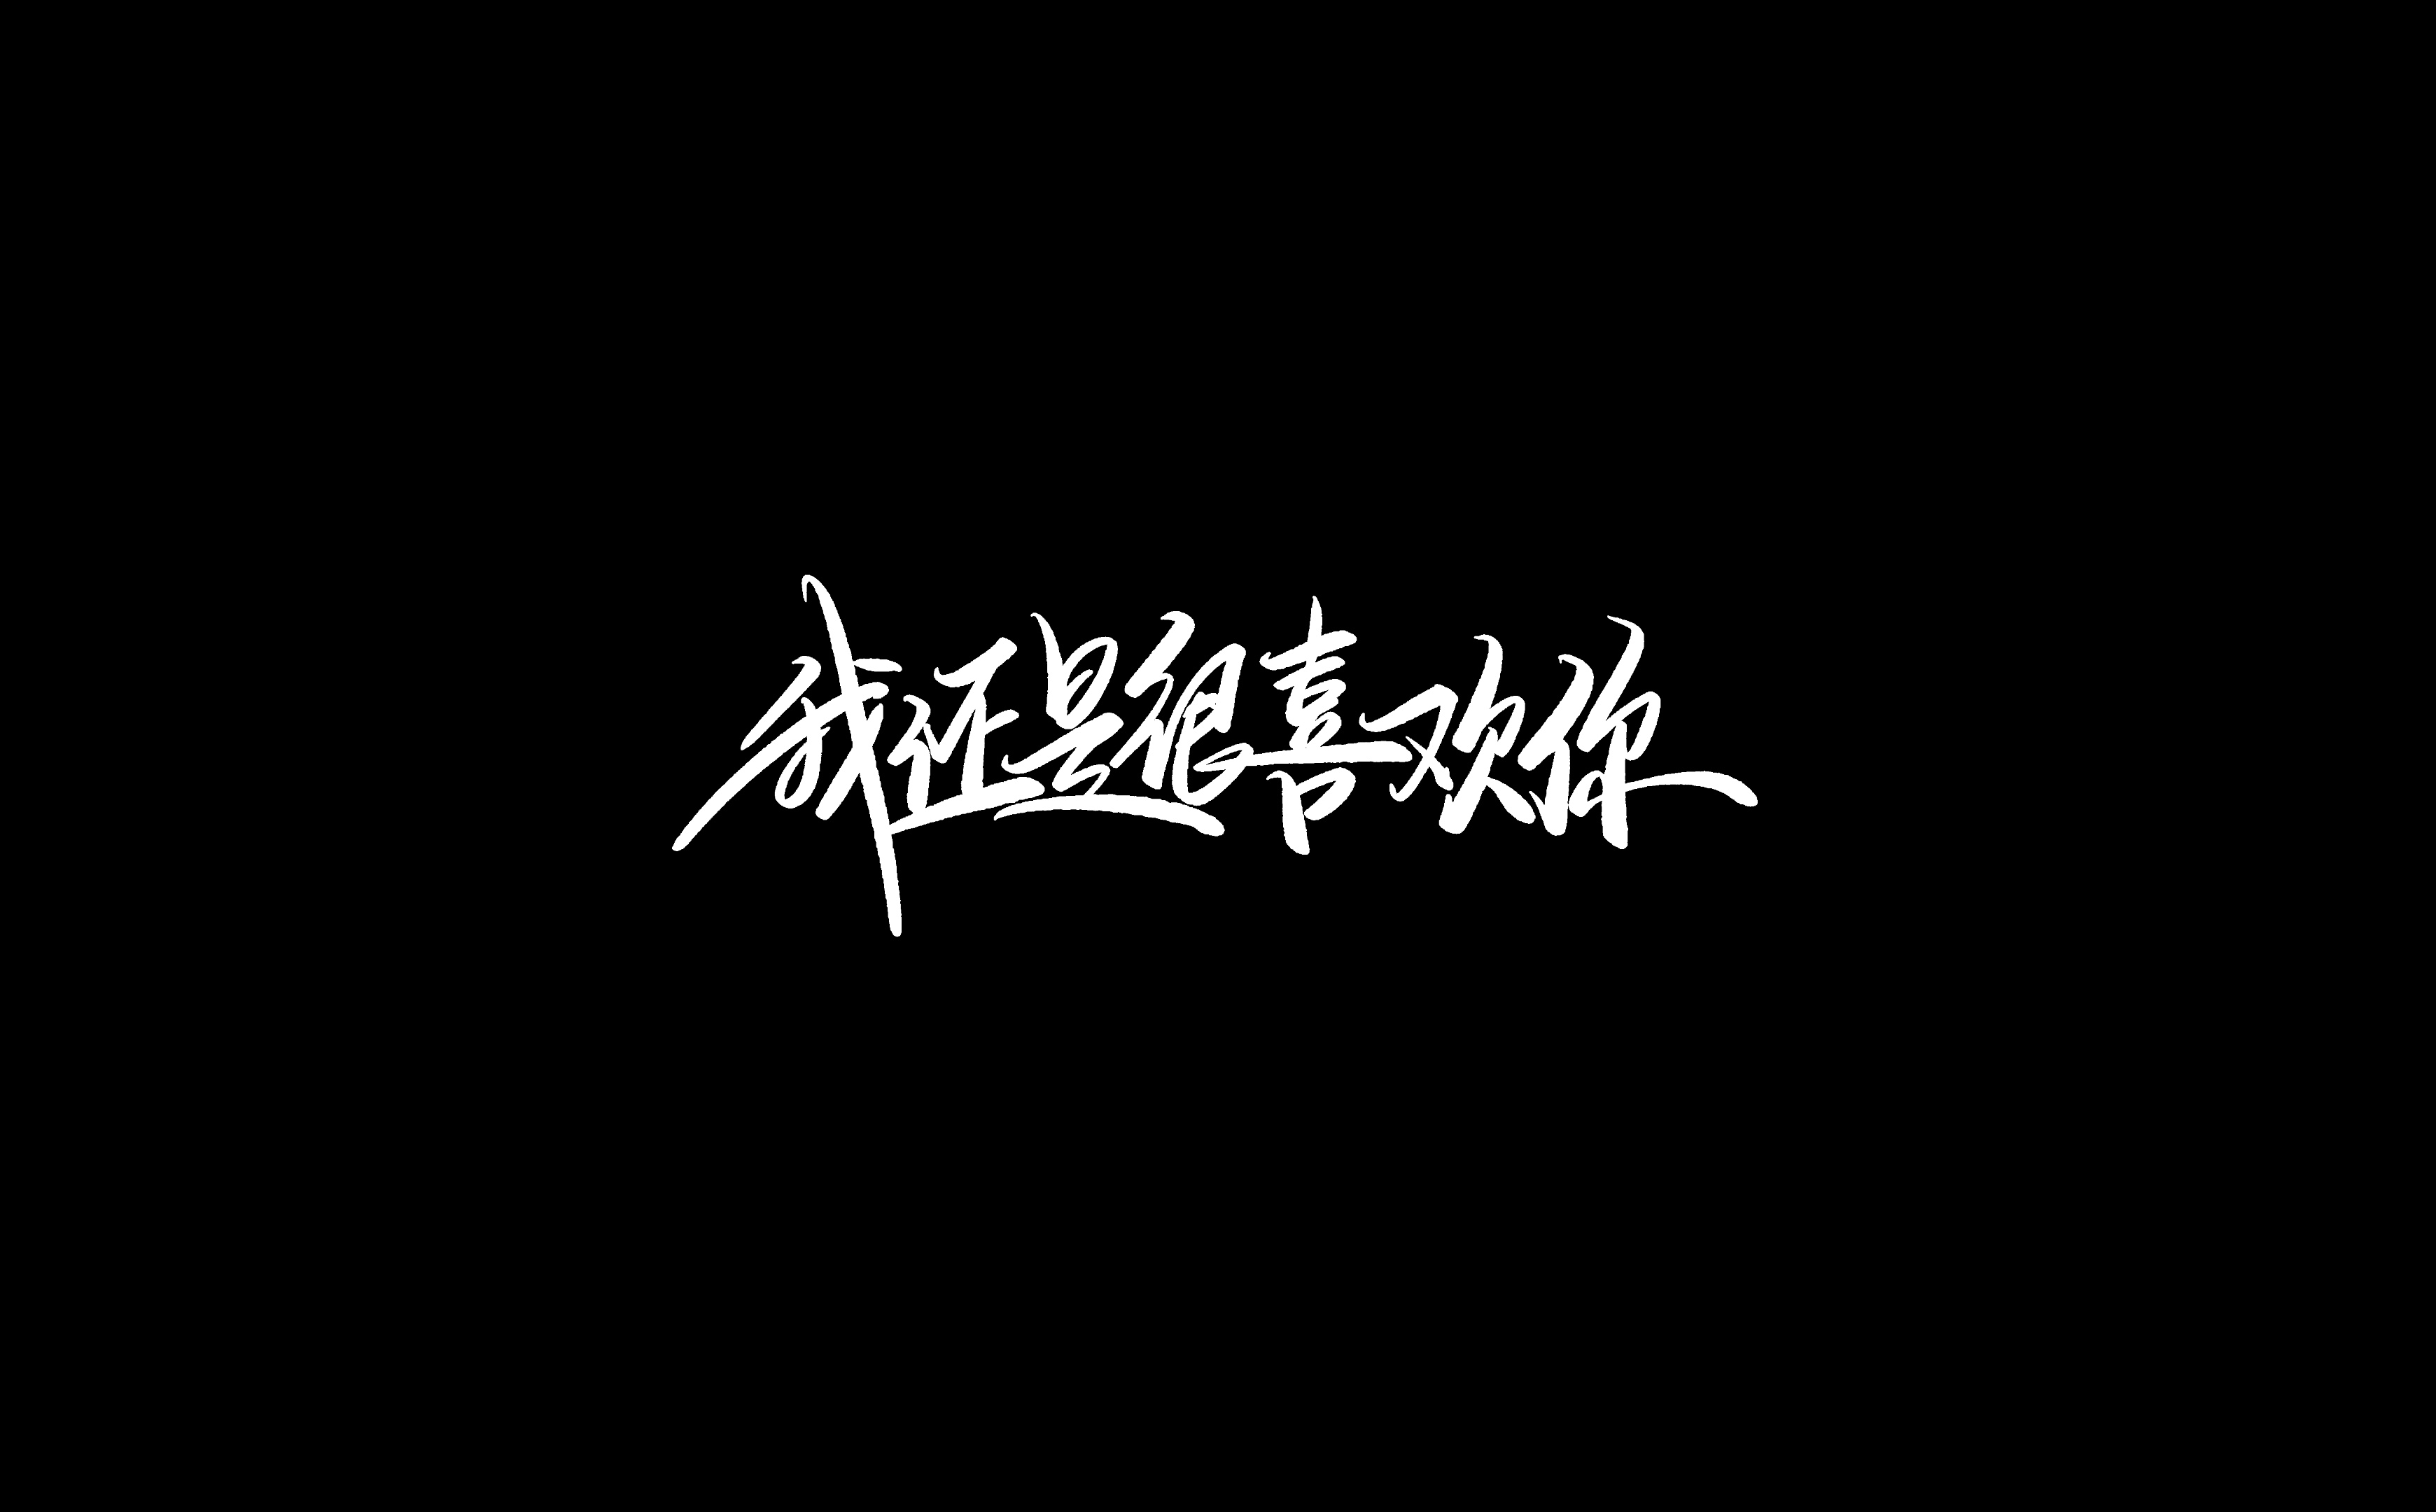 Interesting Chinese Creative Font Design-Font Design of Some Interesting Internet Catchwords